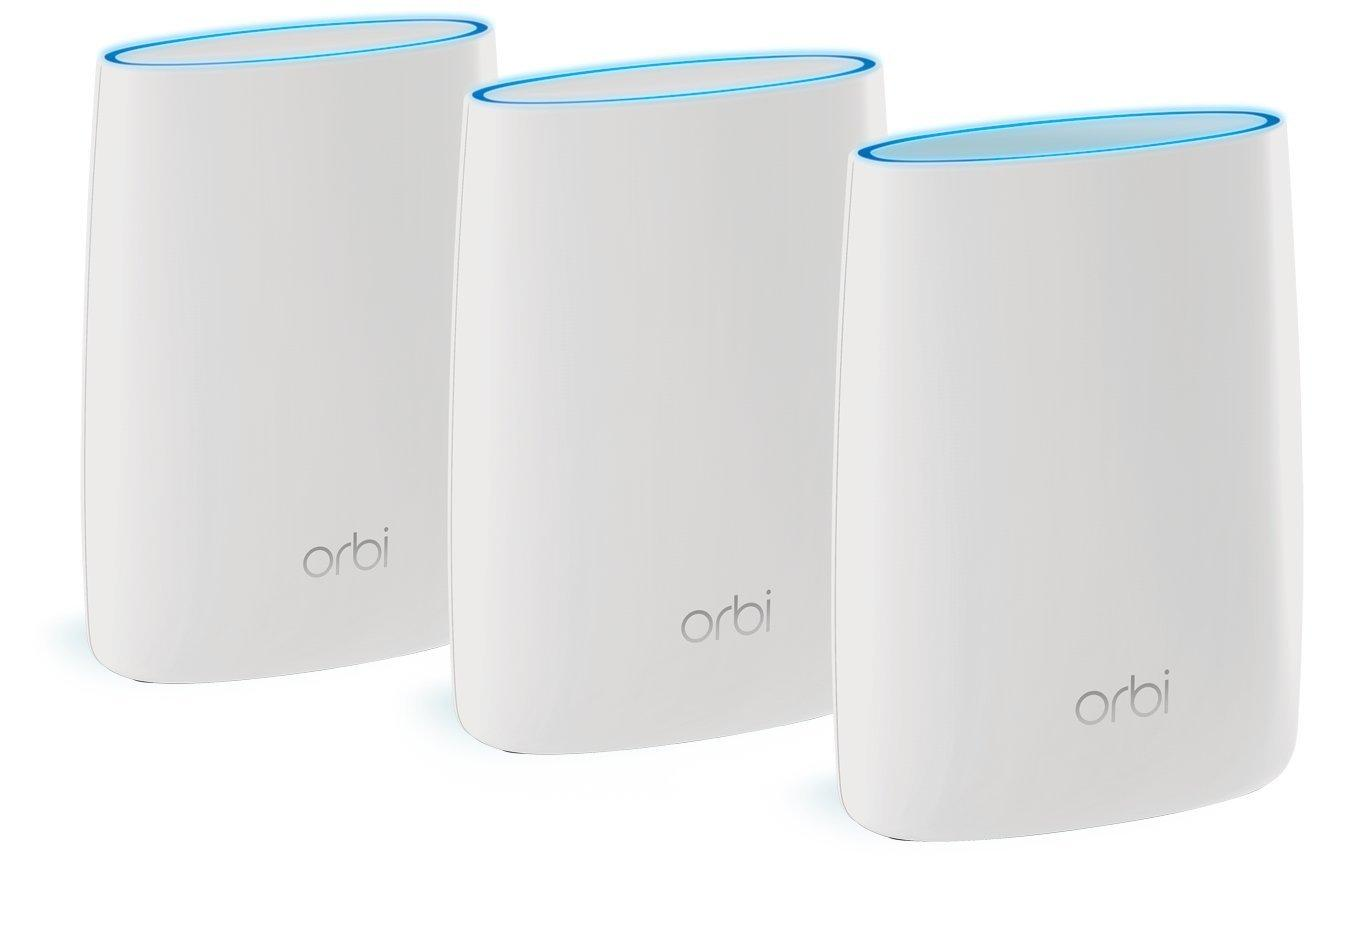 Netgear Wireless Router Orbi Rbk53 Tri Band Ac3000 Mesh